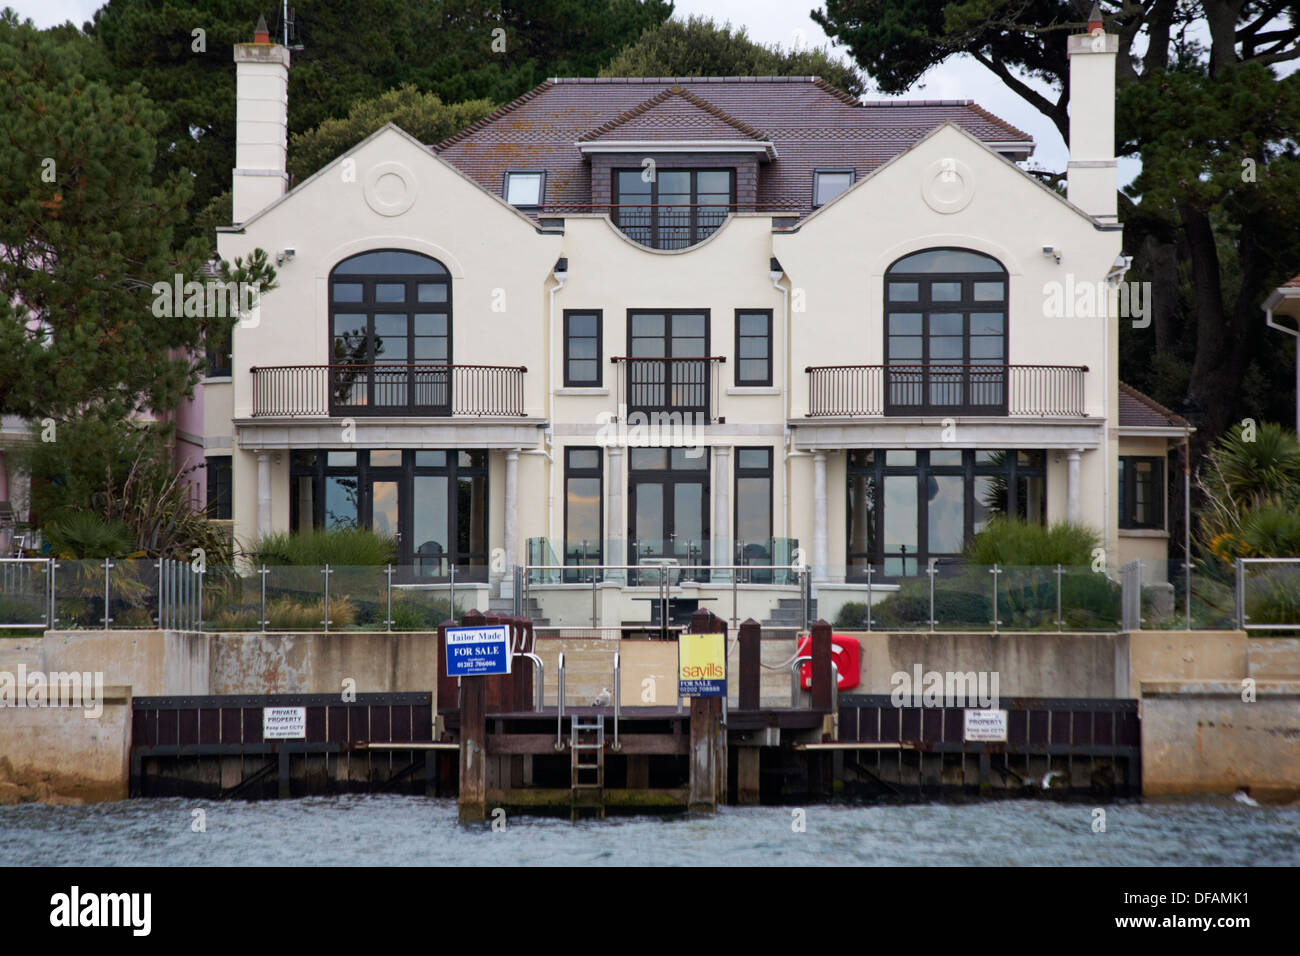 Luxurious Waterfront Property For Sale At Sandbanks Poole